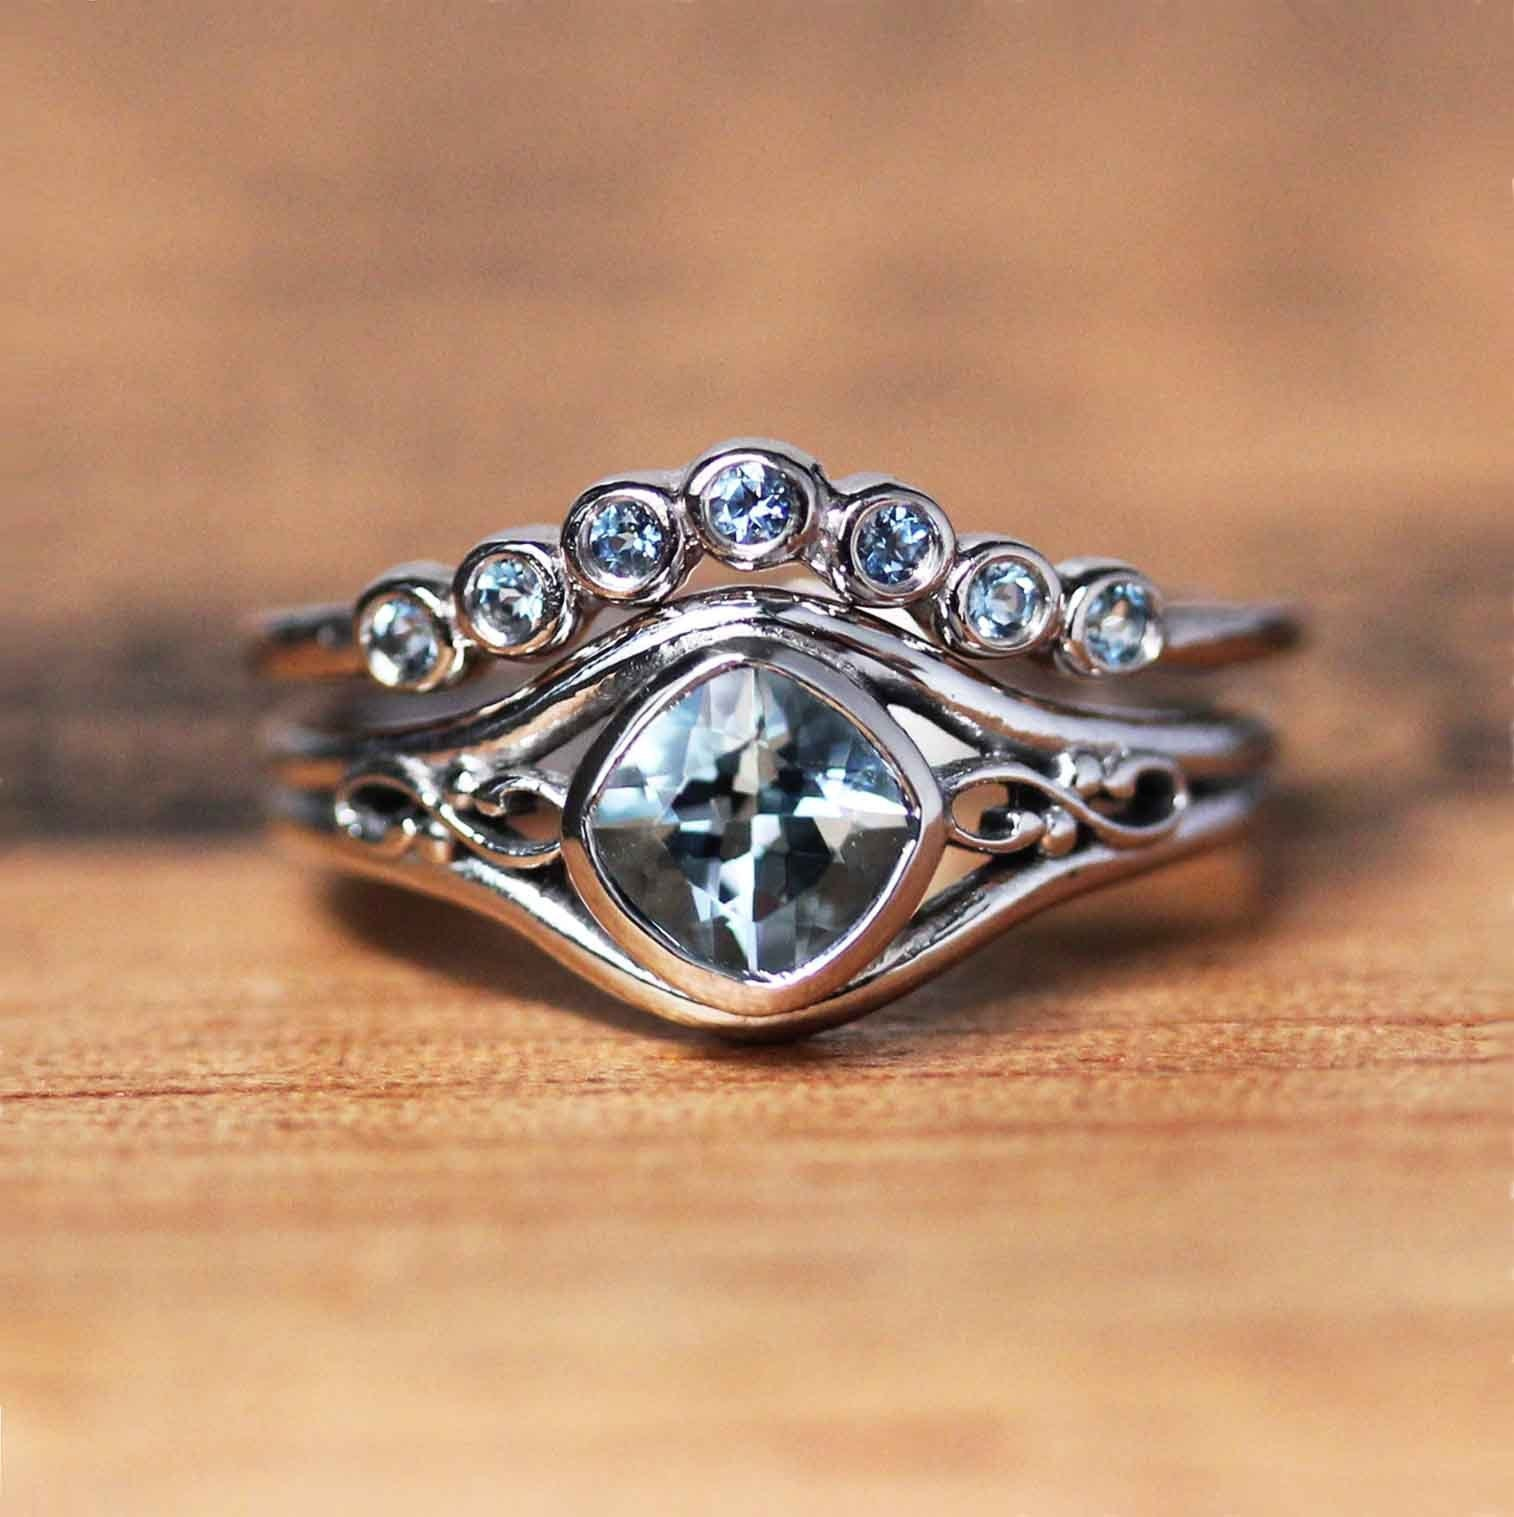 Unique Engagement Wedding Rings Gemstone Jewelry By Metalicious